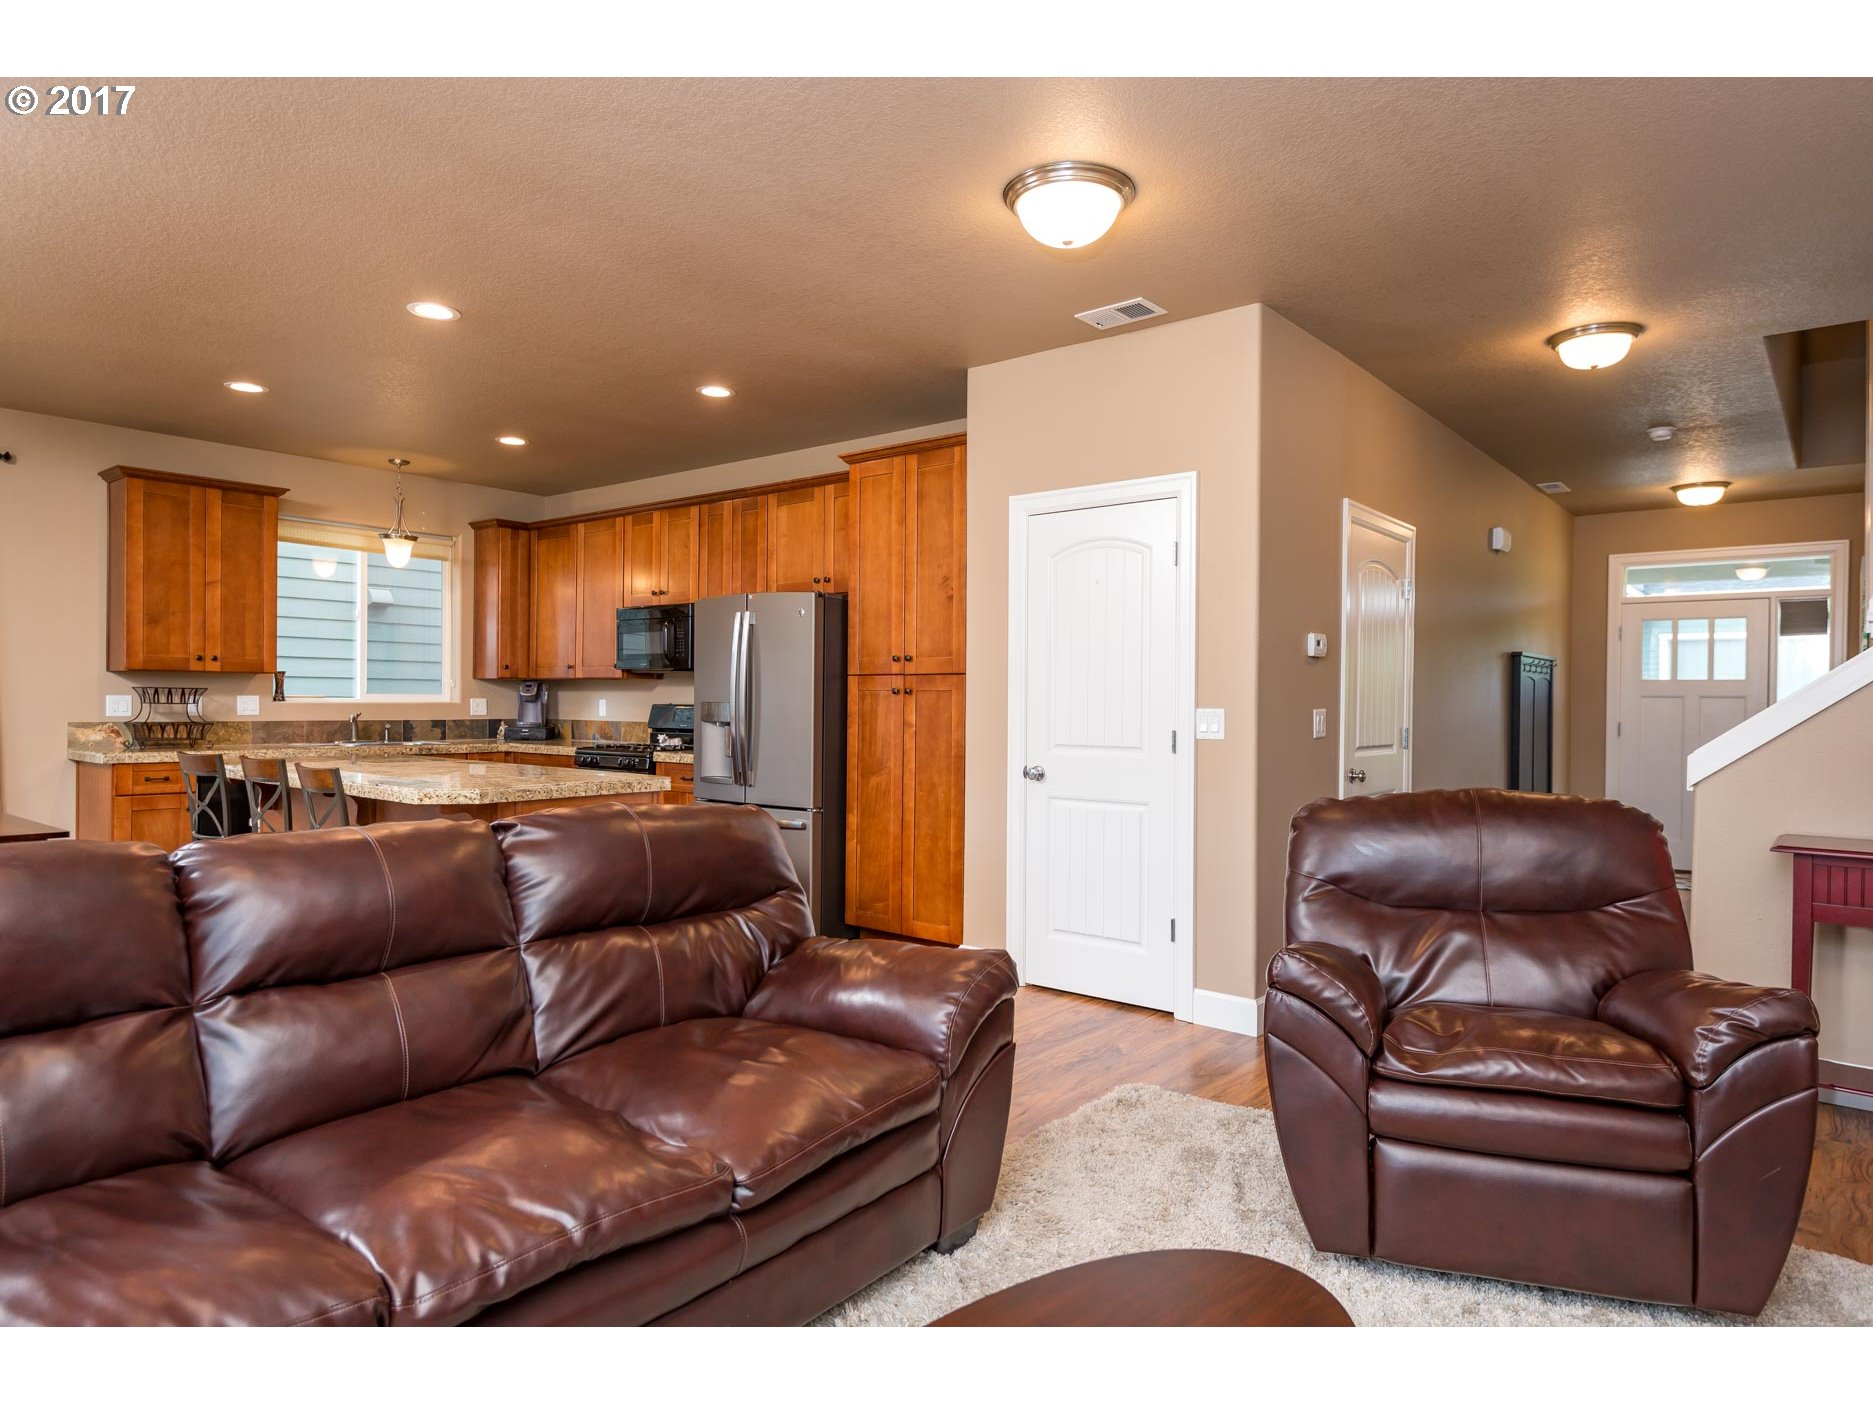 19139 CORK AVE Sandy, OR 97055 - MLS #: 17502203